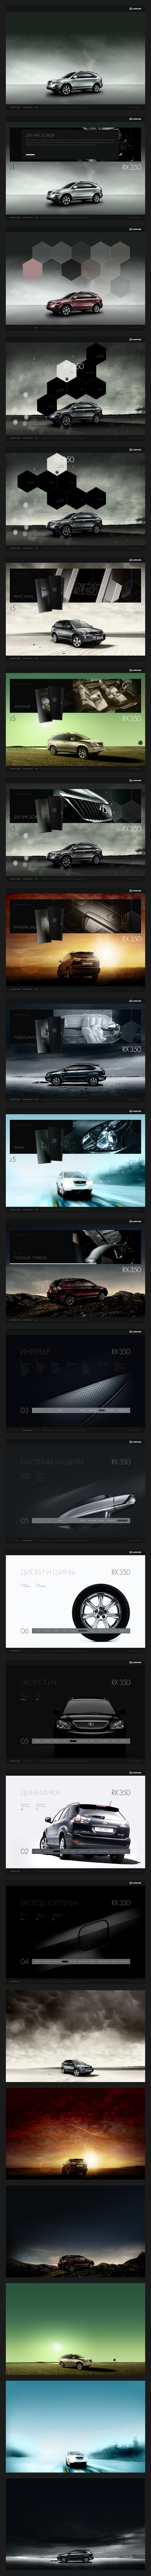 Lexus RX350 v.2 on Web Design Served